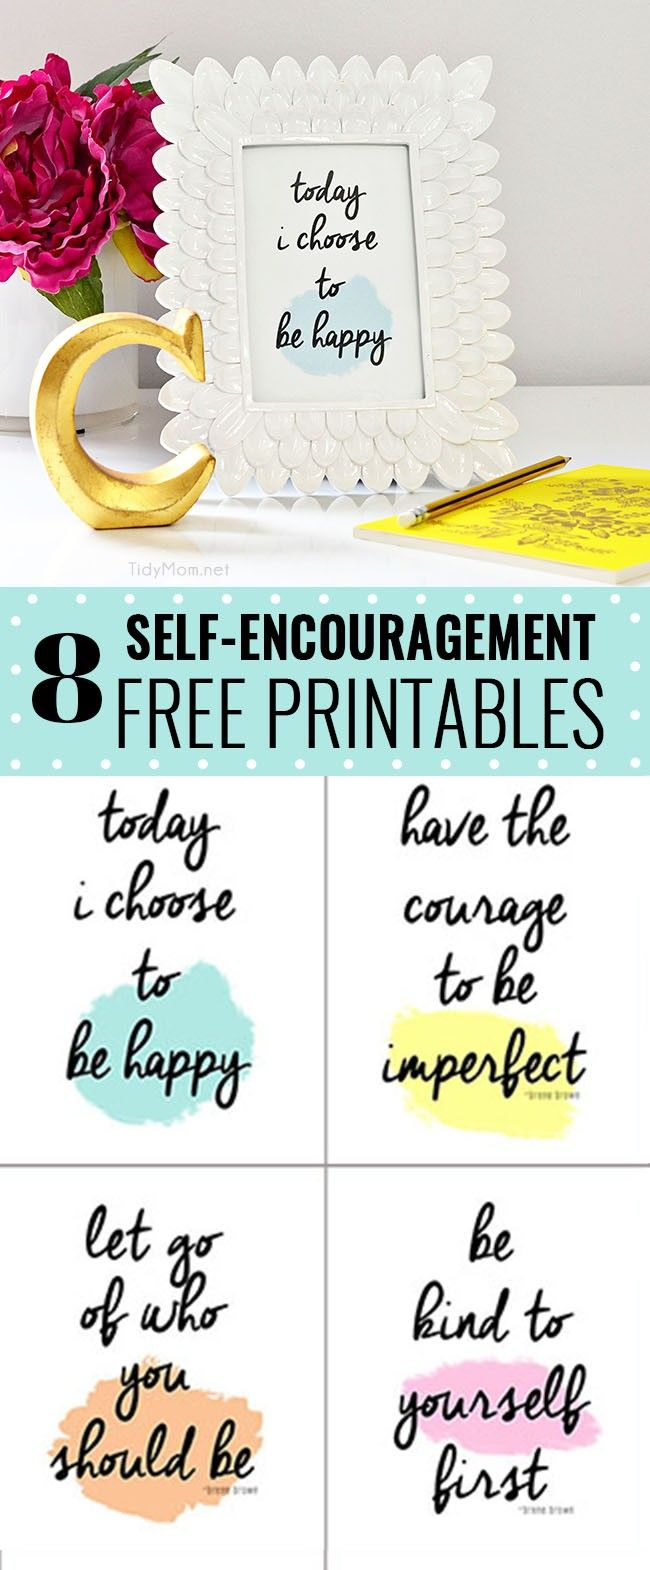 347 best Printables & Graphics images on Pinterest | Free printables ...